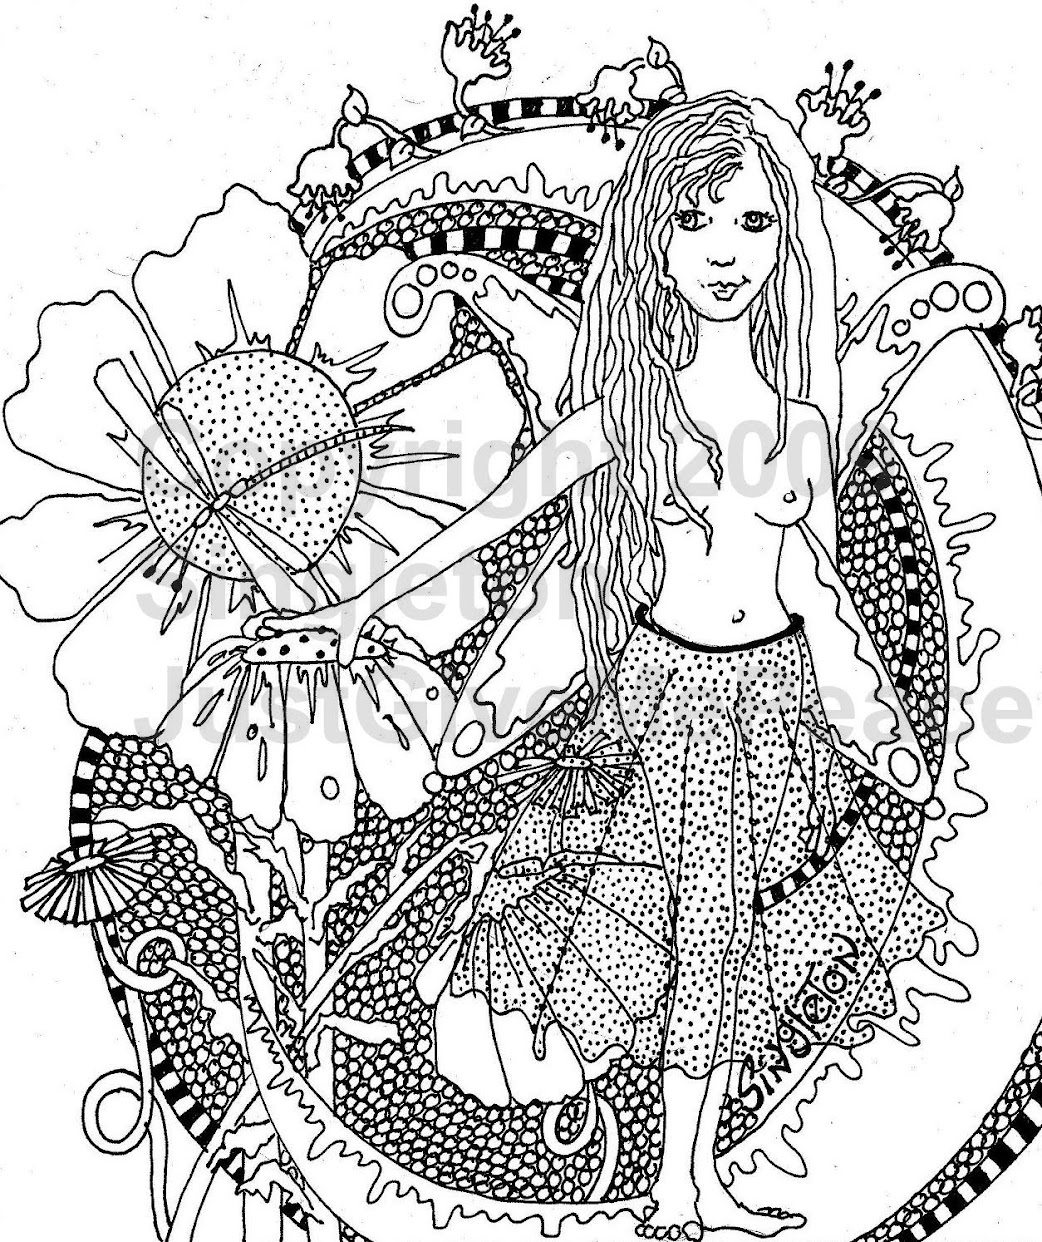 hippie coloring pages - photo#34